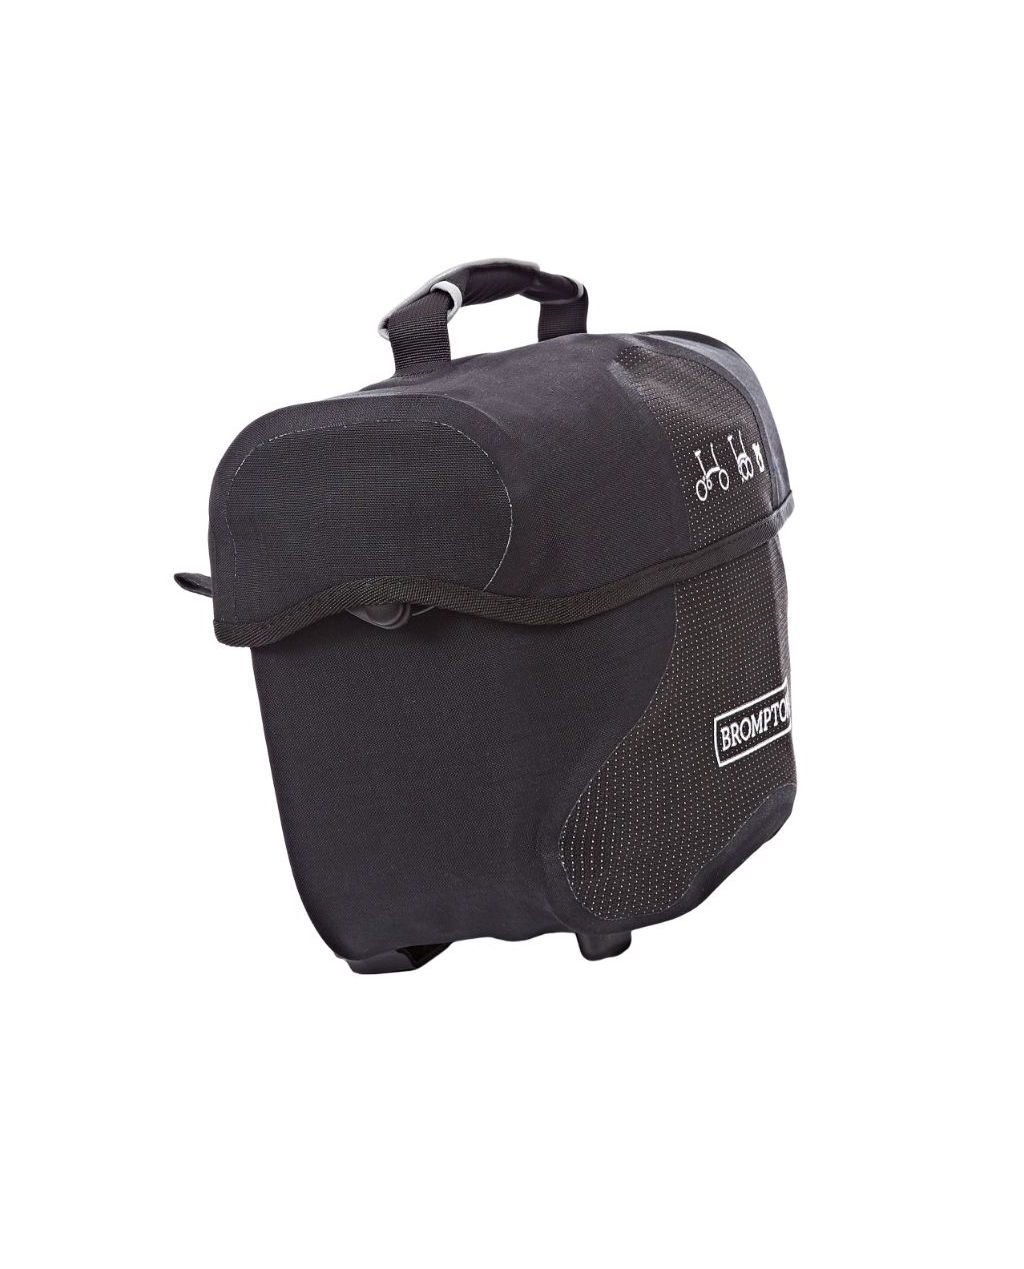 Q-Parts - Mini O Bag - Black Reflective